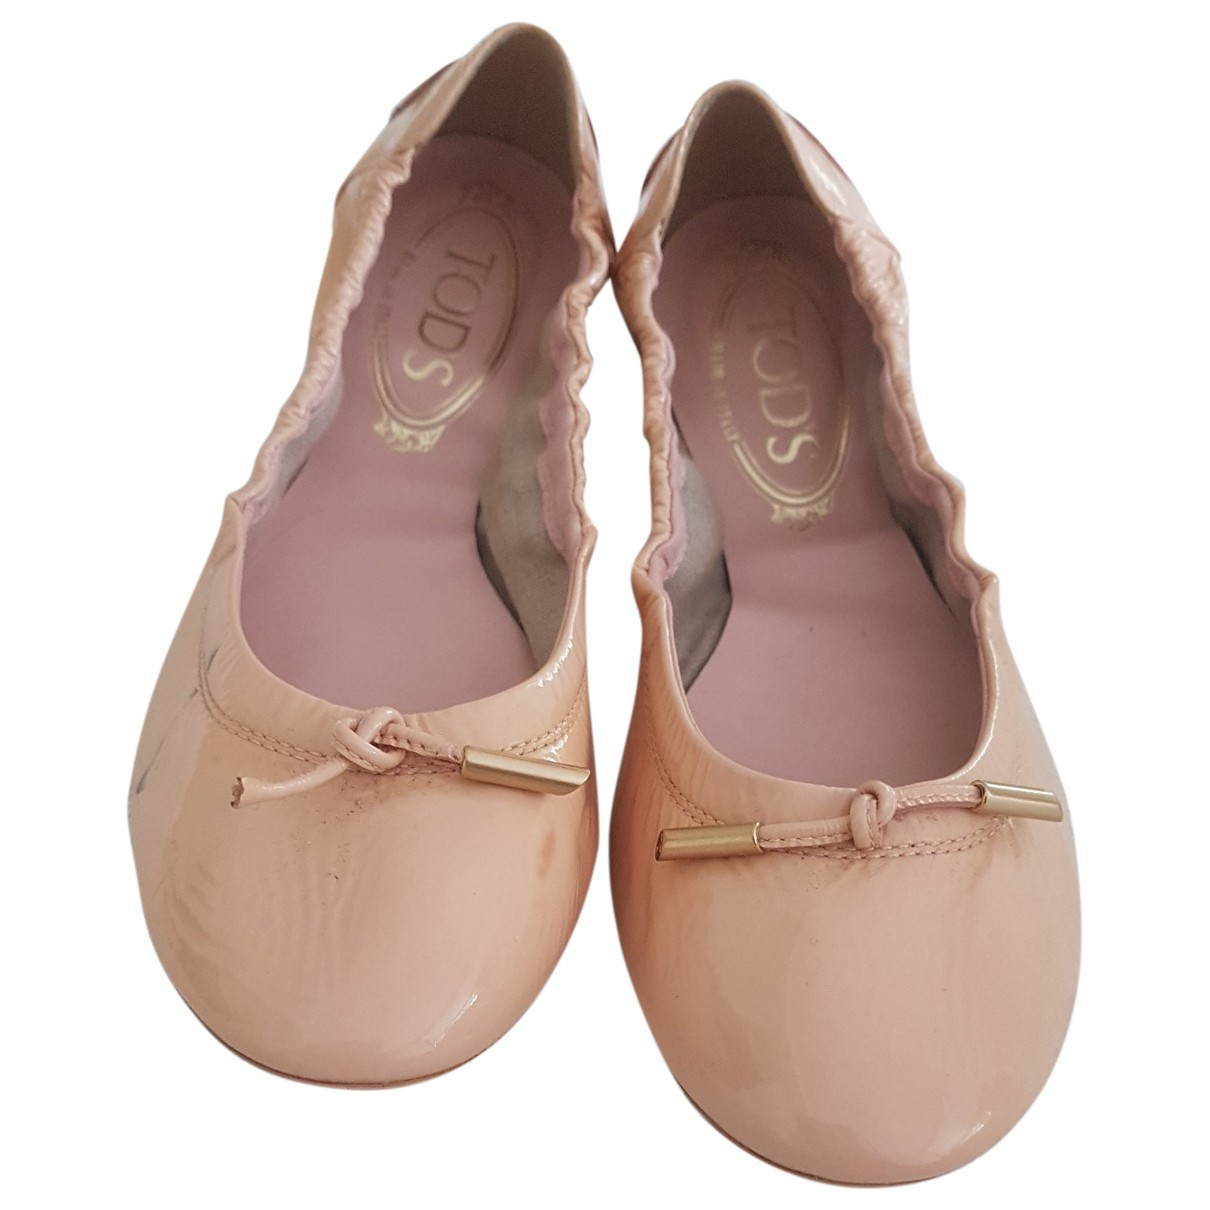 Tod's N Beige Patent leather Ballet flats for Women 38 EU